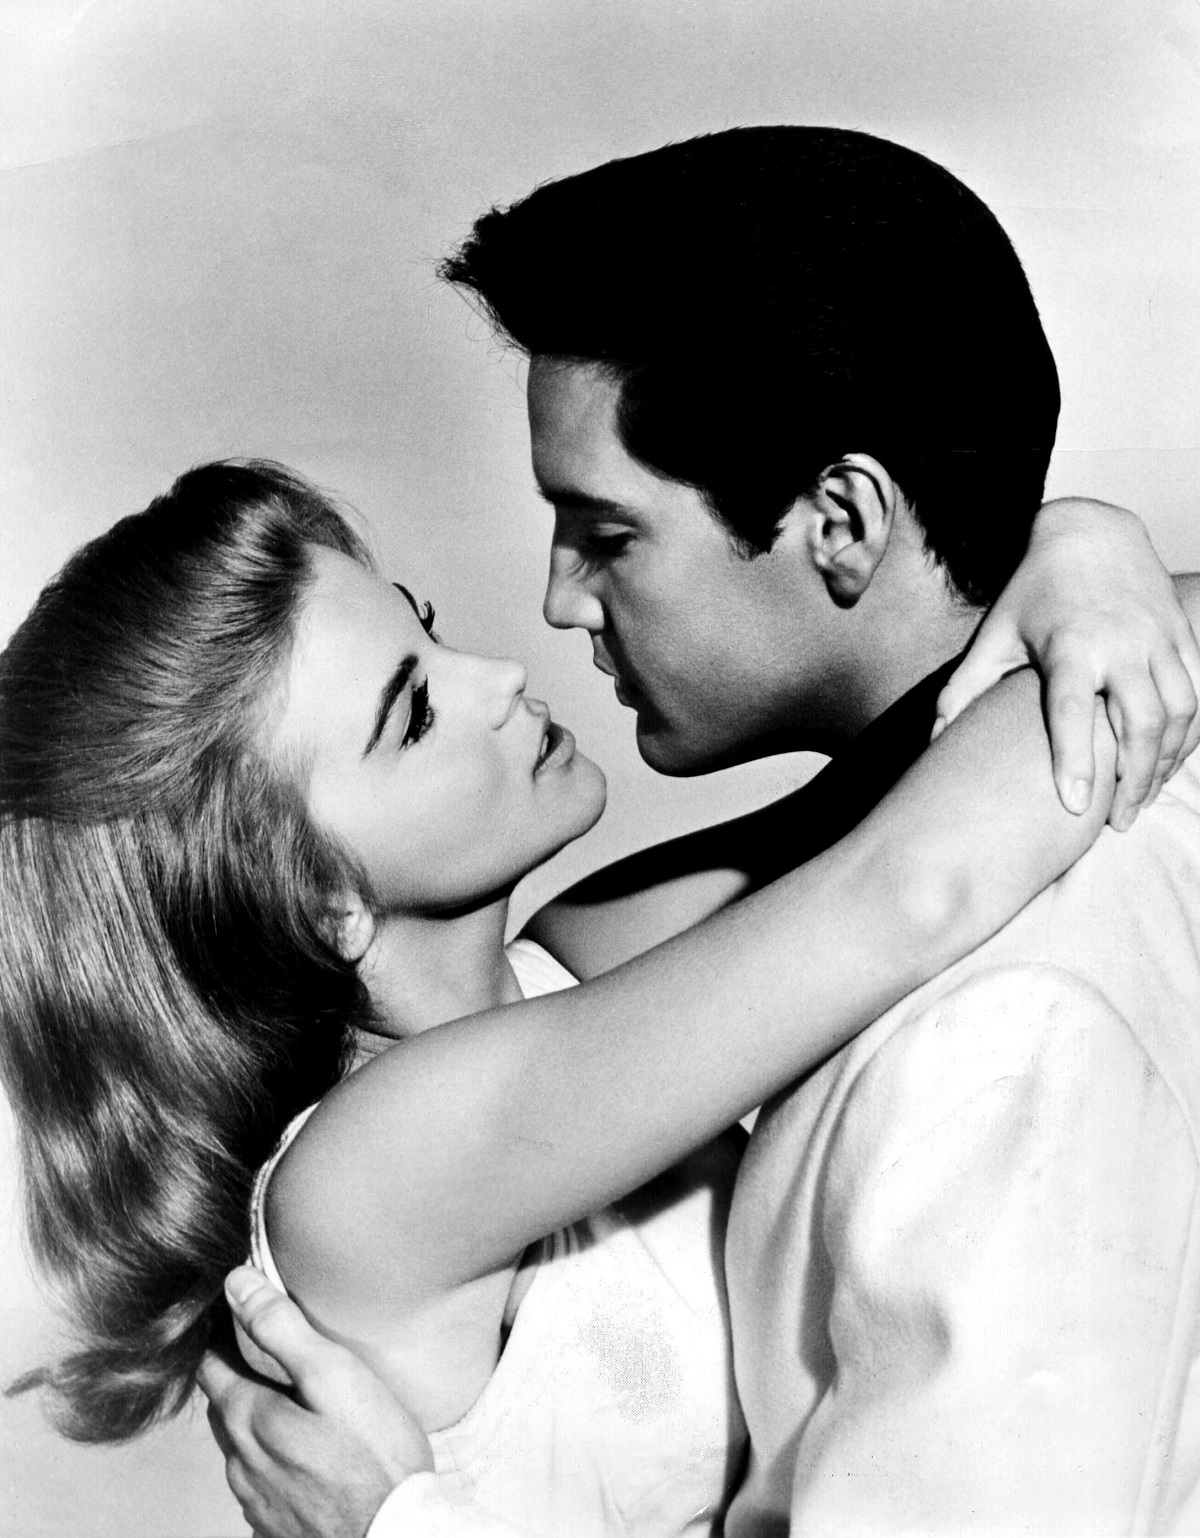 Black and white photo of Ann-Margret and Elvis Presley hugging and looking into each other's eyes in 'Viva Las Vegas'